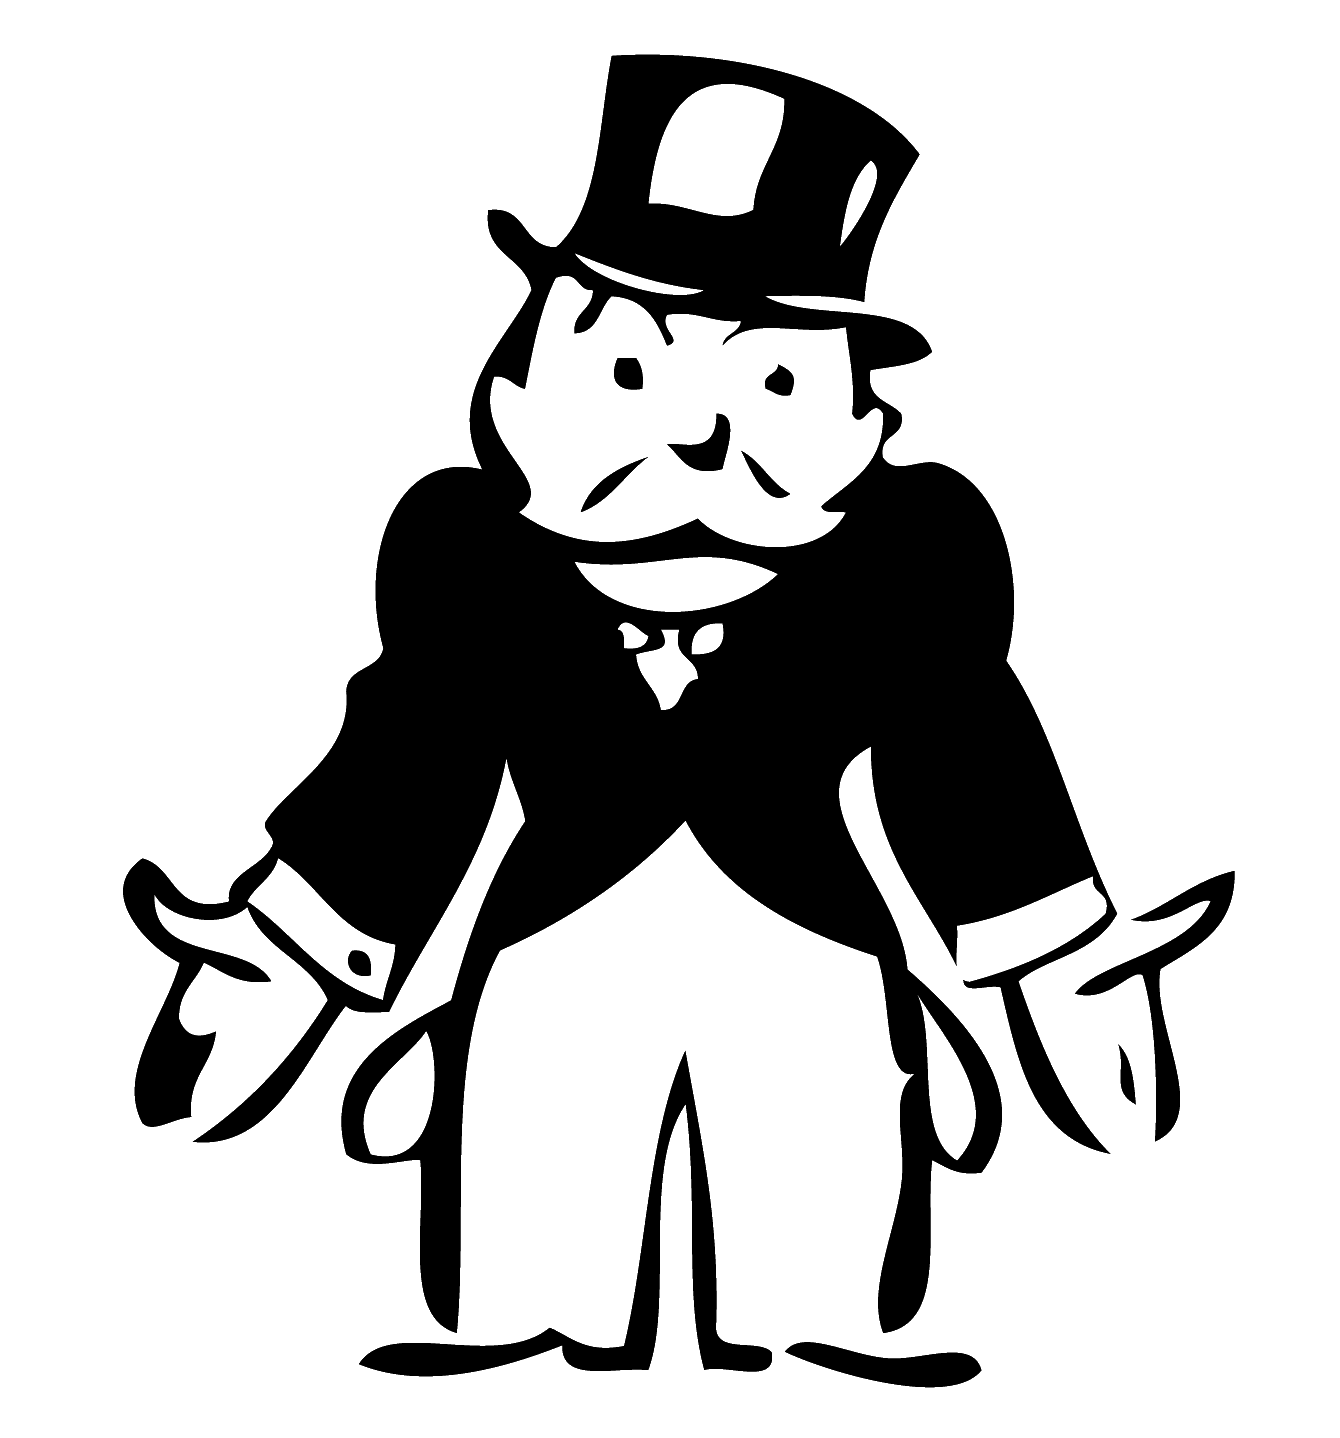 Selling out s taxpayers. Boulder clipart black and white